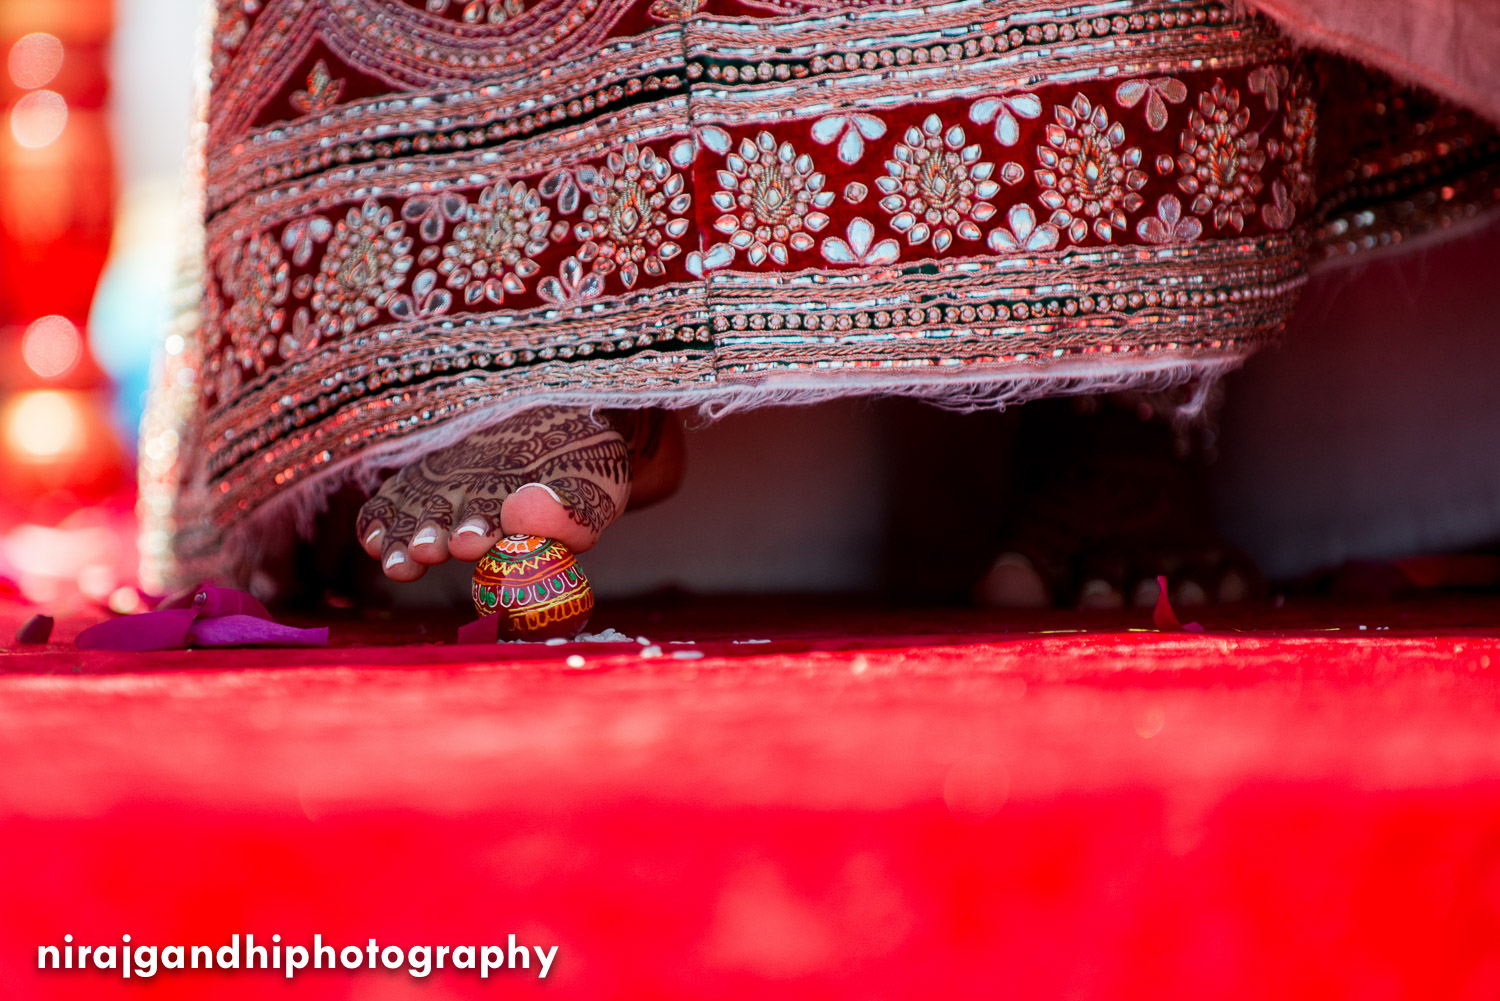 Arpita + Neel's Wedding-525.jpg